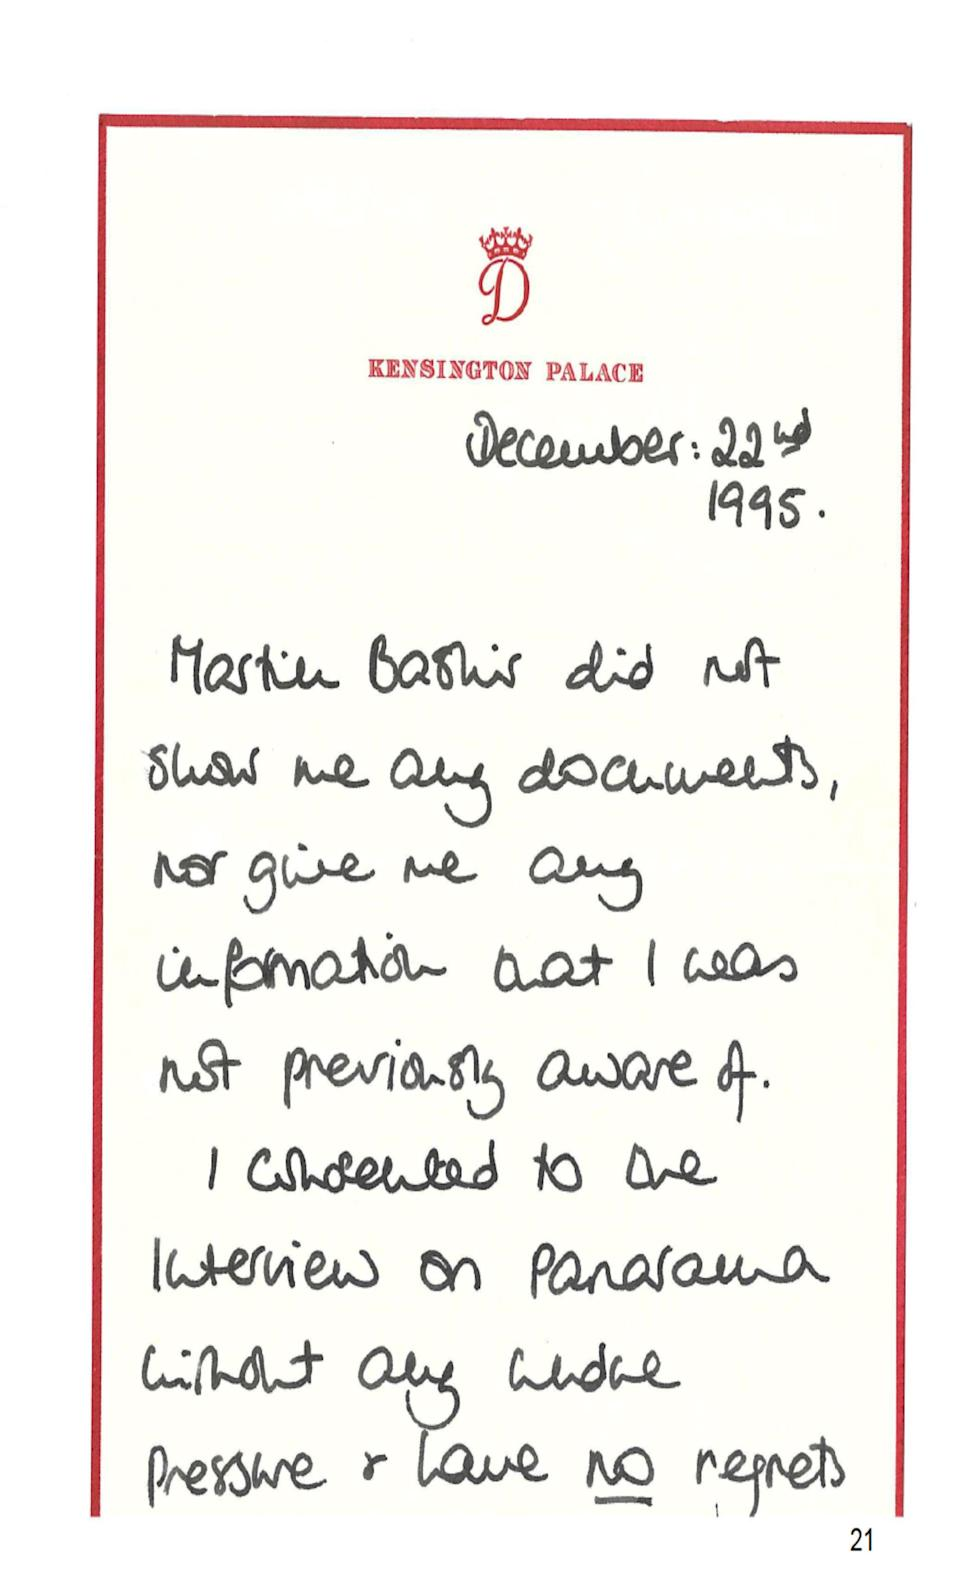 Diana wrote a note saying she had 'no regrets' about the interviewPA Media